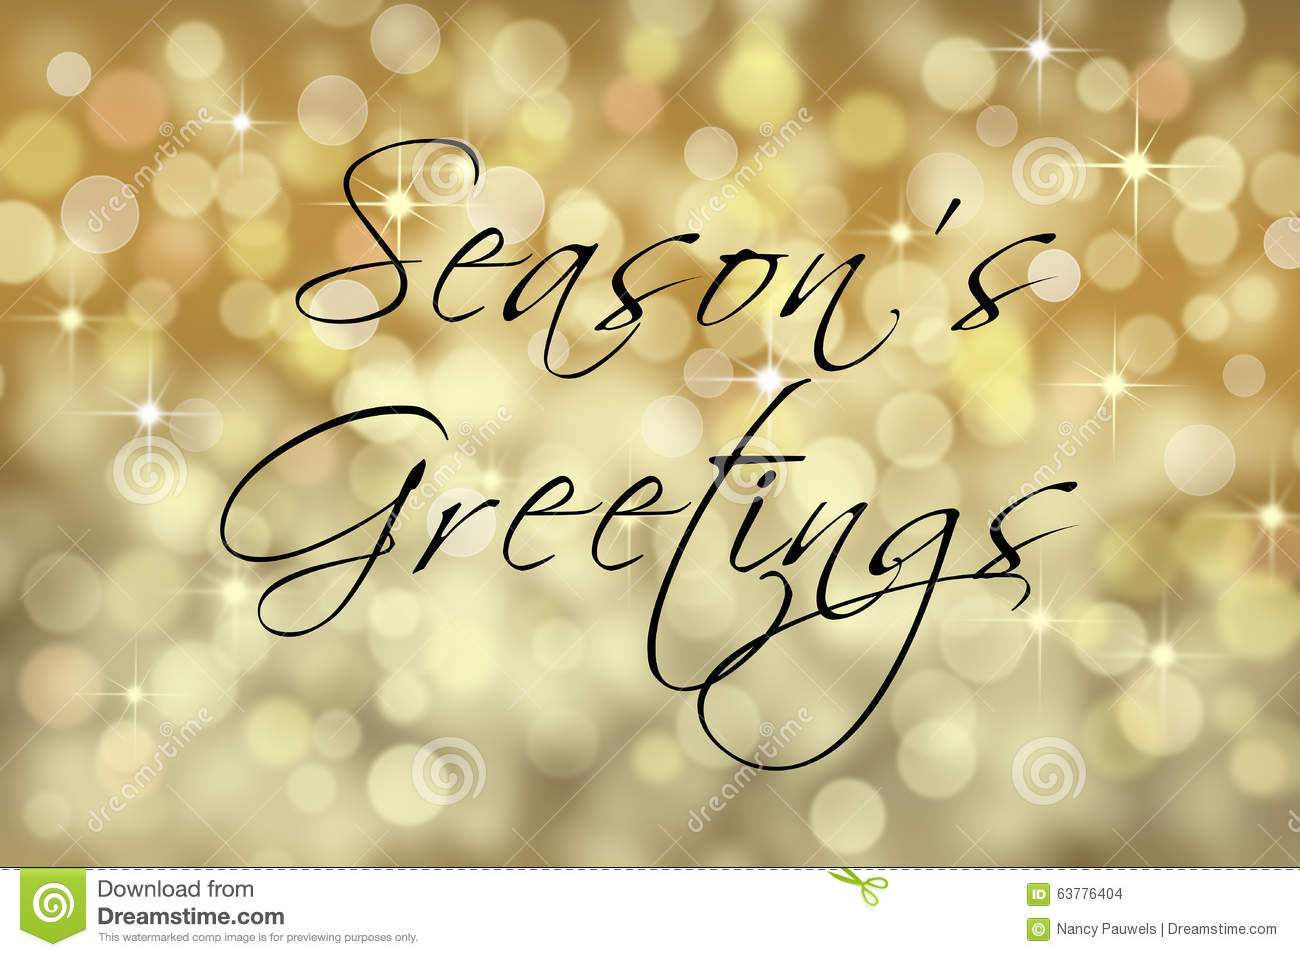 Seasons Greetings Text Card With Bokeh Background Stock